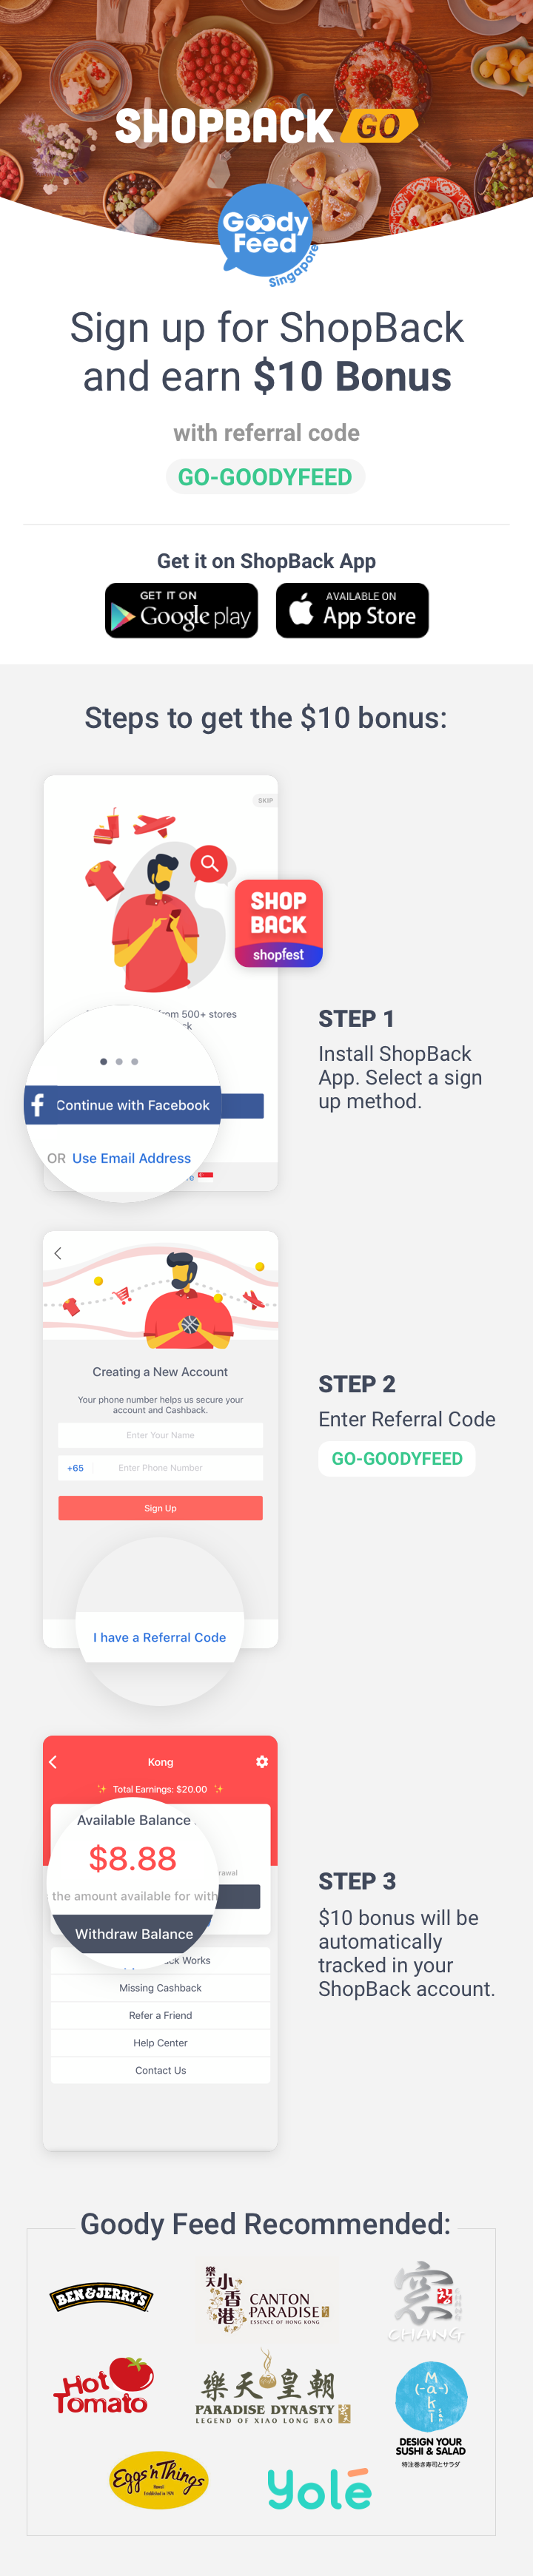 ShopBack GO x Goody Feed